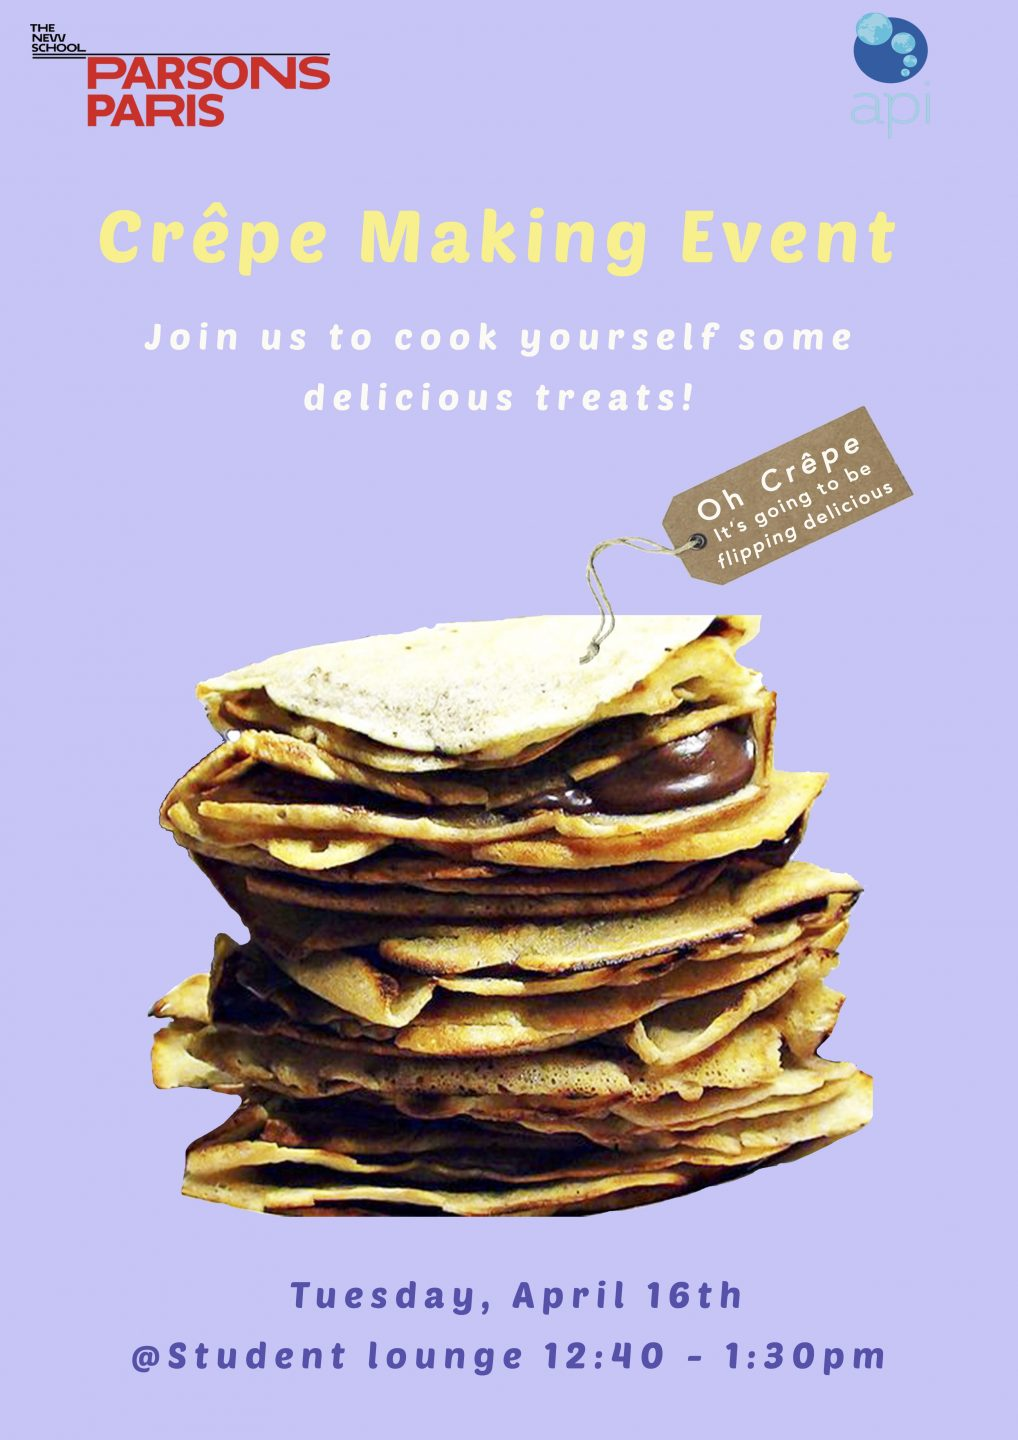 Crêpe Making Event